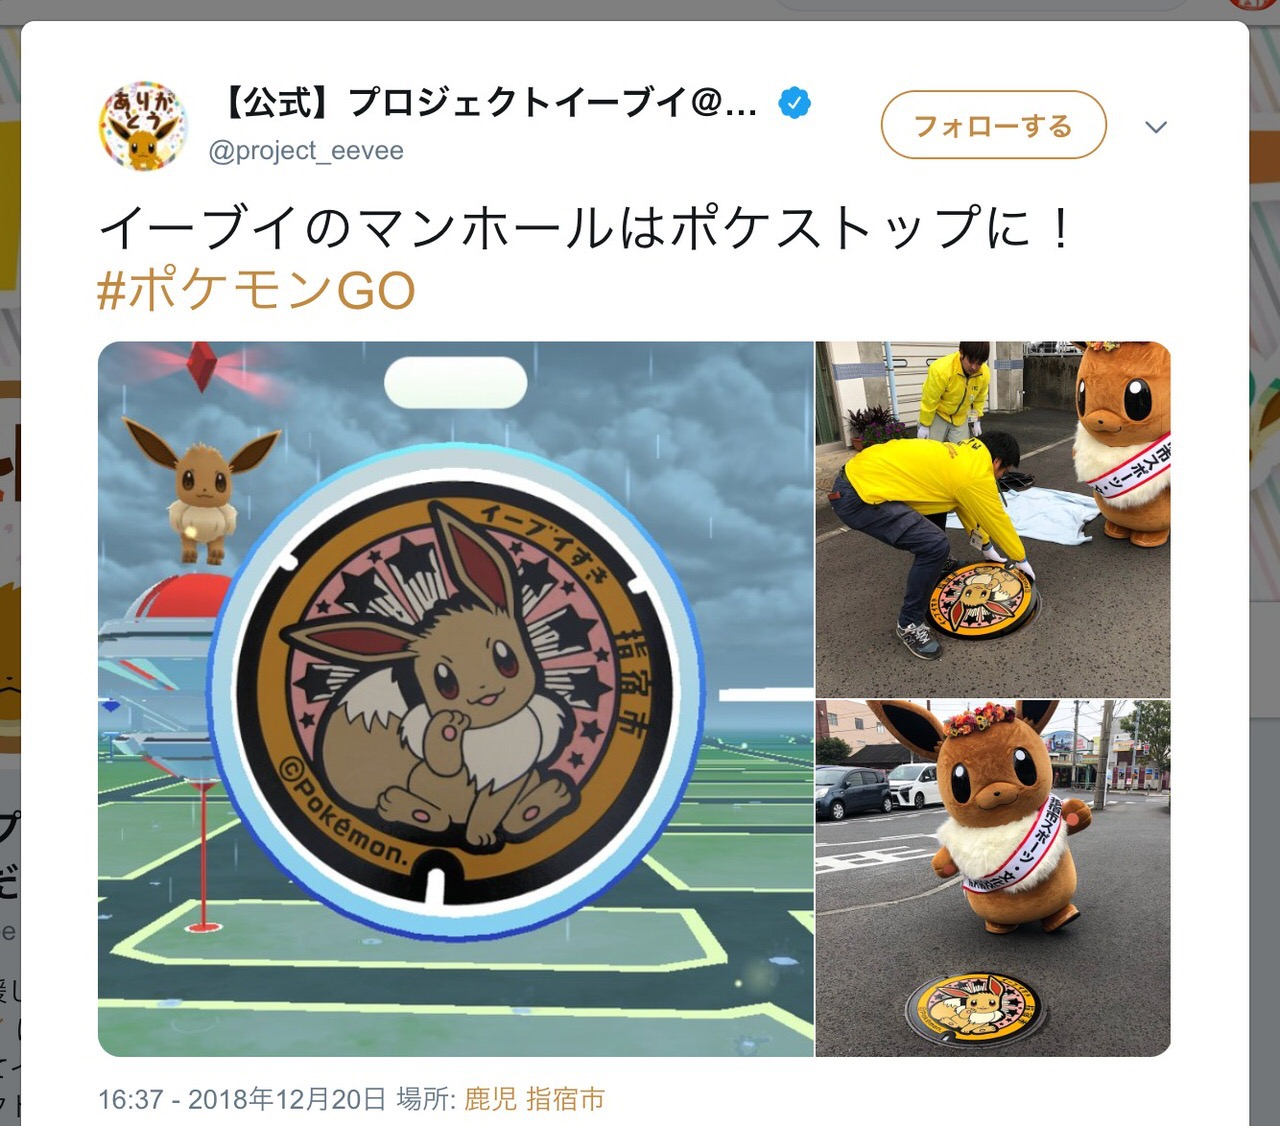 「イーブイ好き→いぶすき」語呂合わせで指宿市にイーブイのマンホールが爆誕